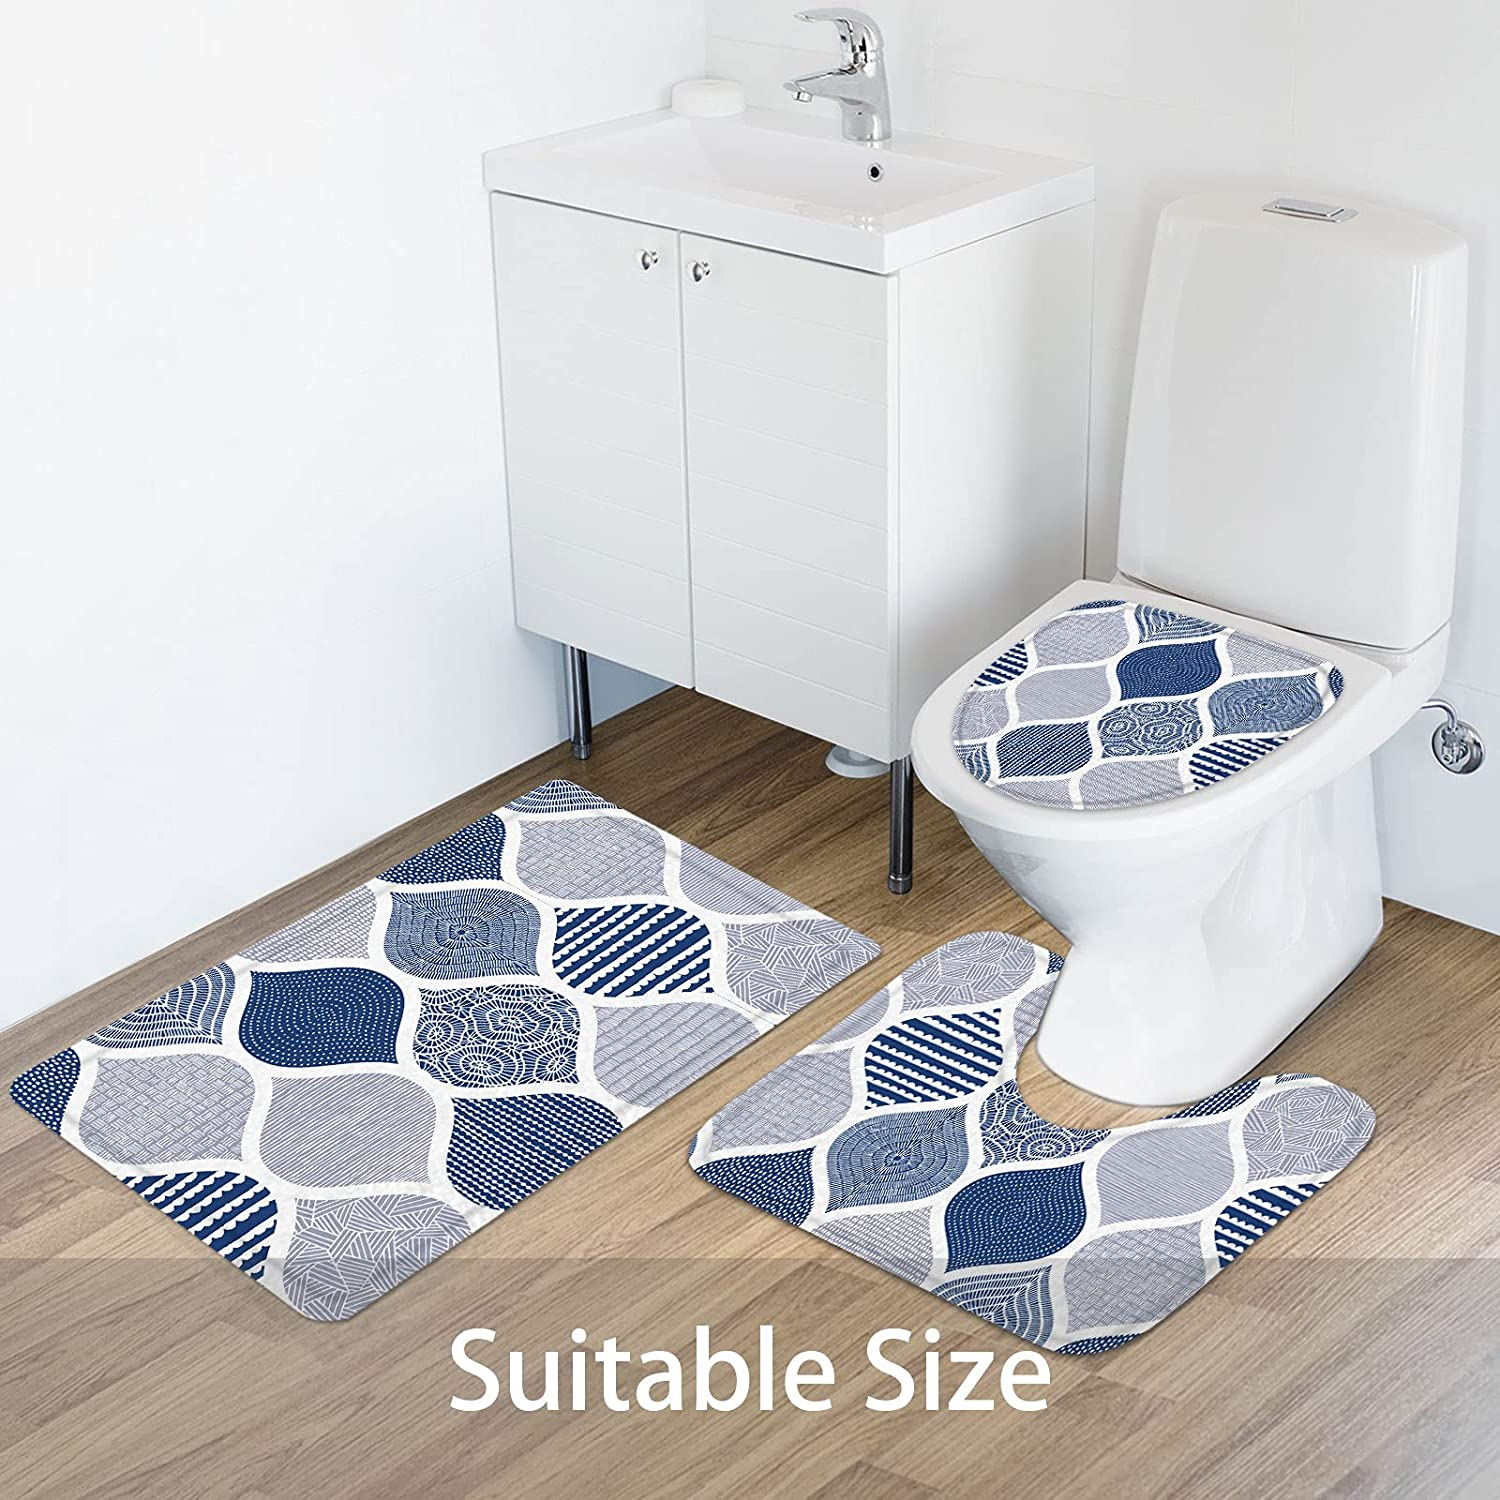 Buy MitoVilla Blue Shower Curtain Sets with Rugs, Navy Blue ...